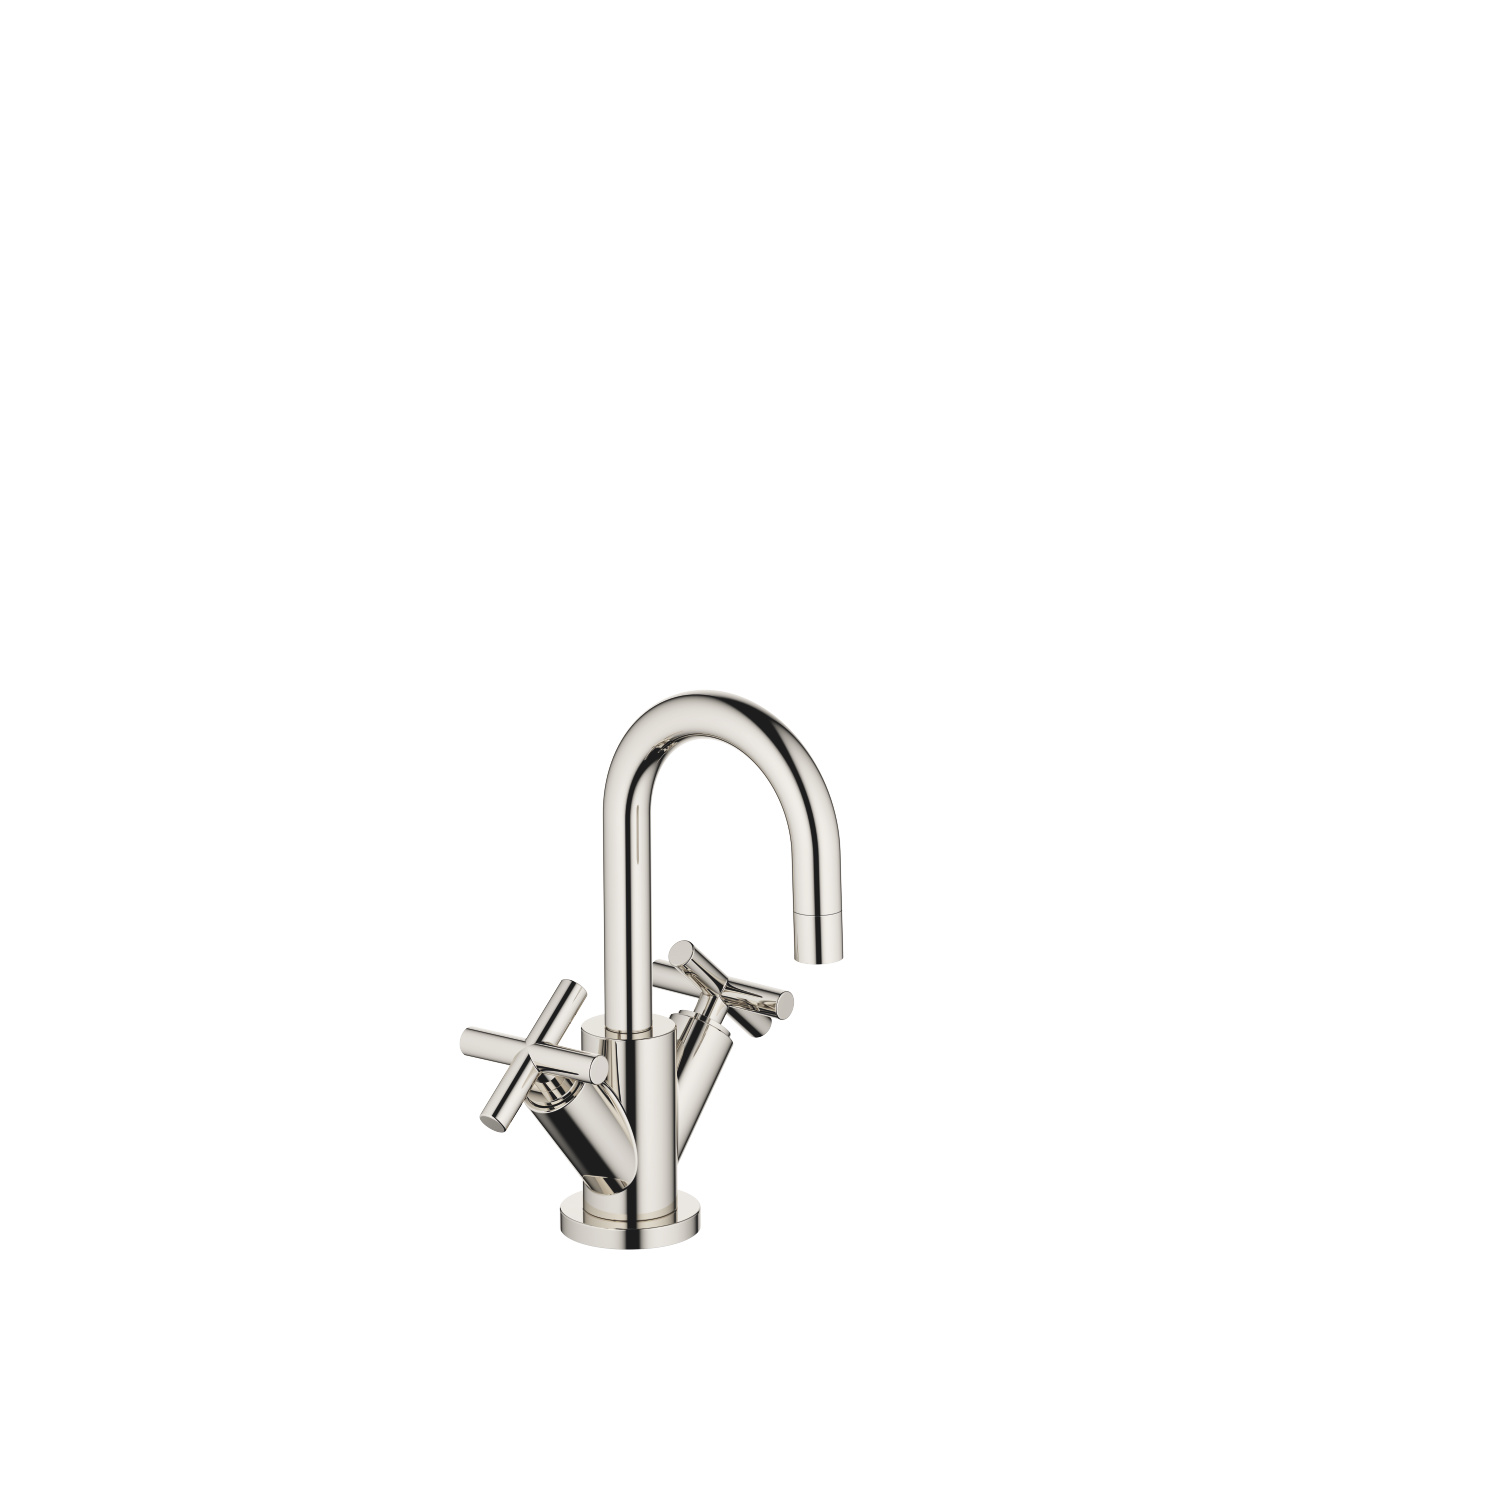 Single-hole basin mixer with pop-up waste - platinum